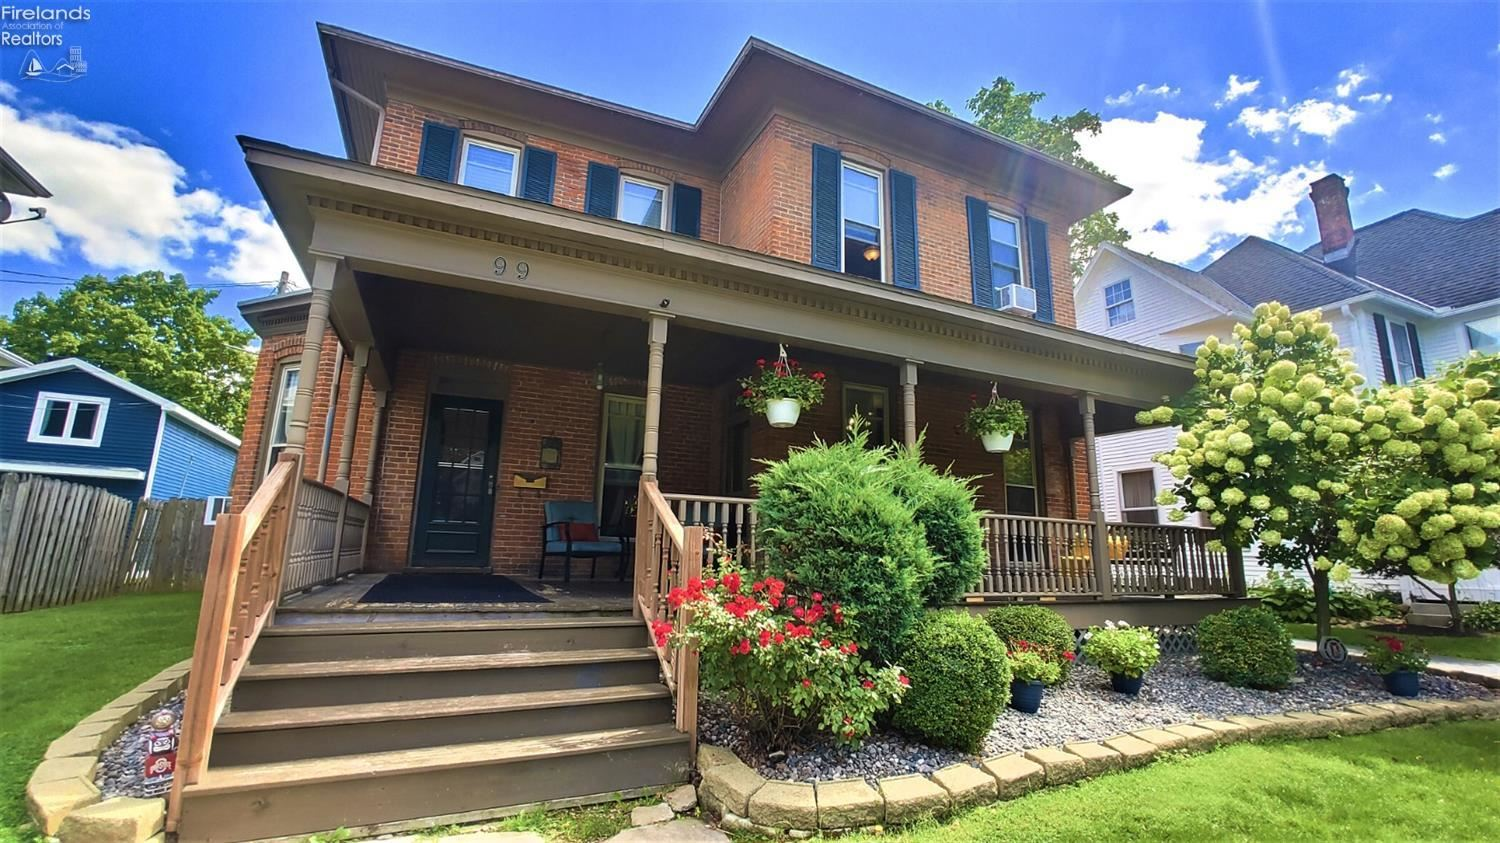 99 Sycamore Street, Tiffin, OH 44883 - MLS#: 20203800